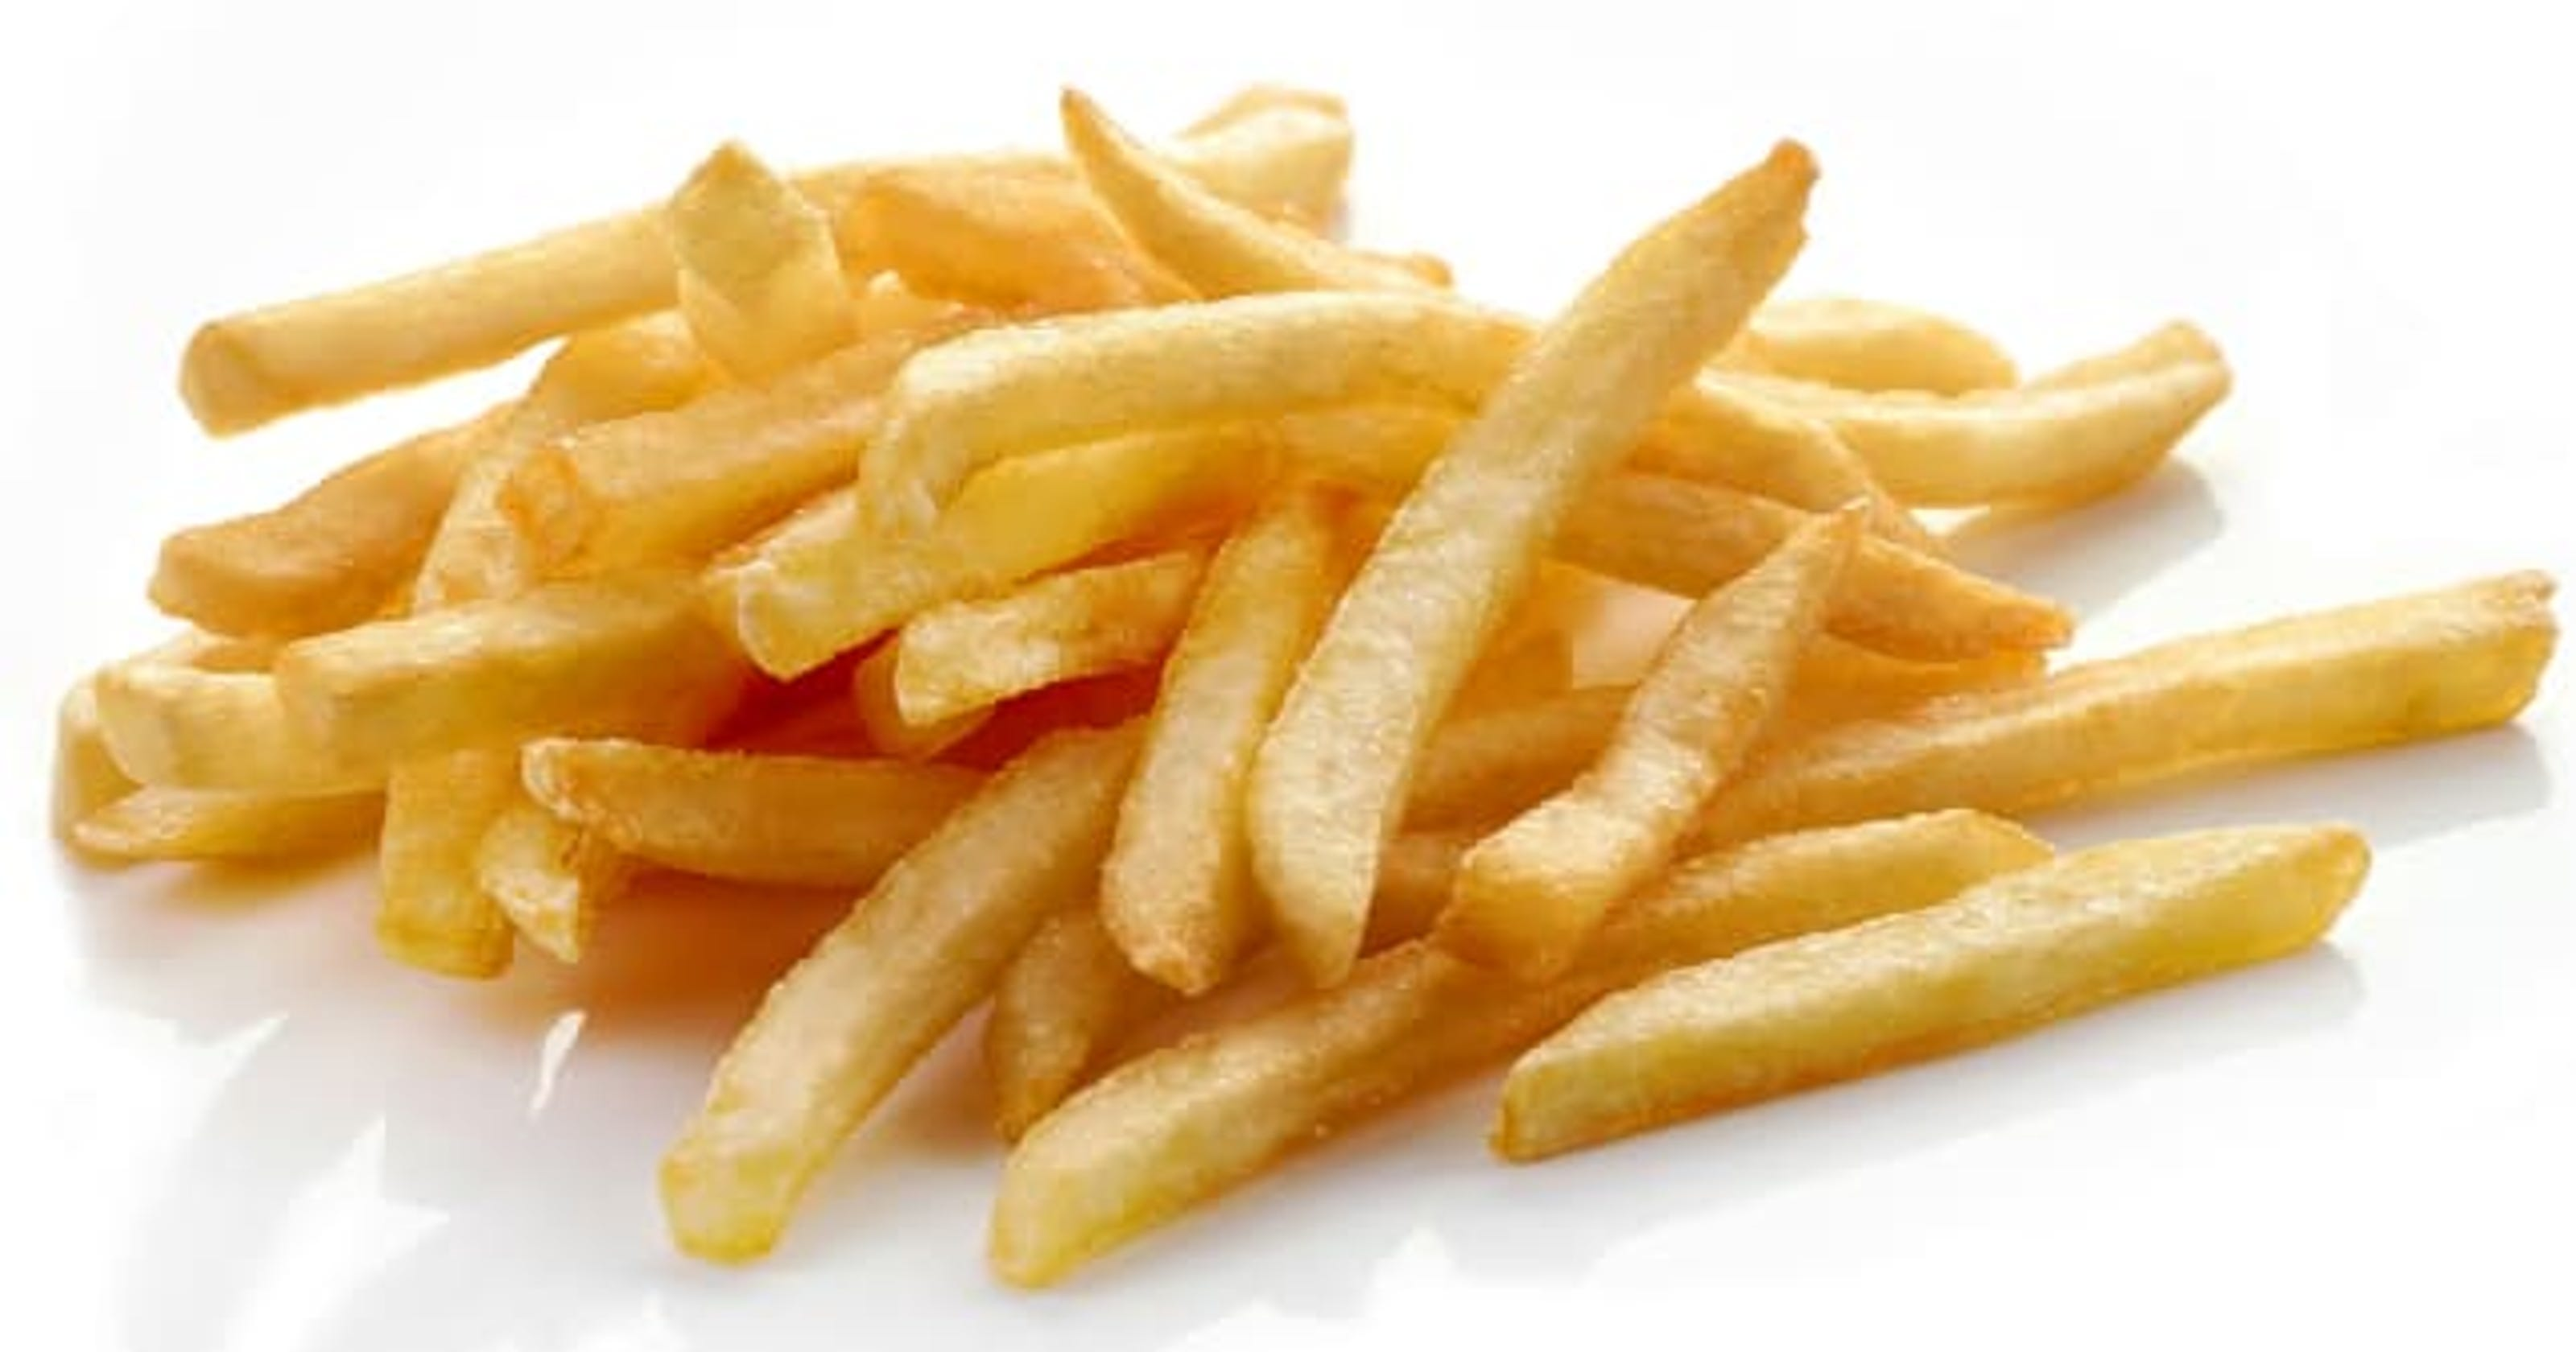 harvard expert advises eating 6 fries per serving twitter says nope